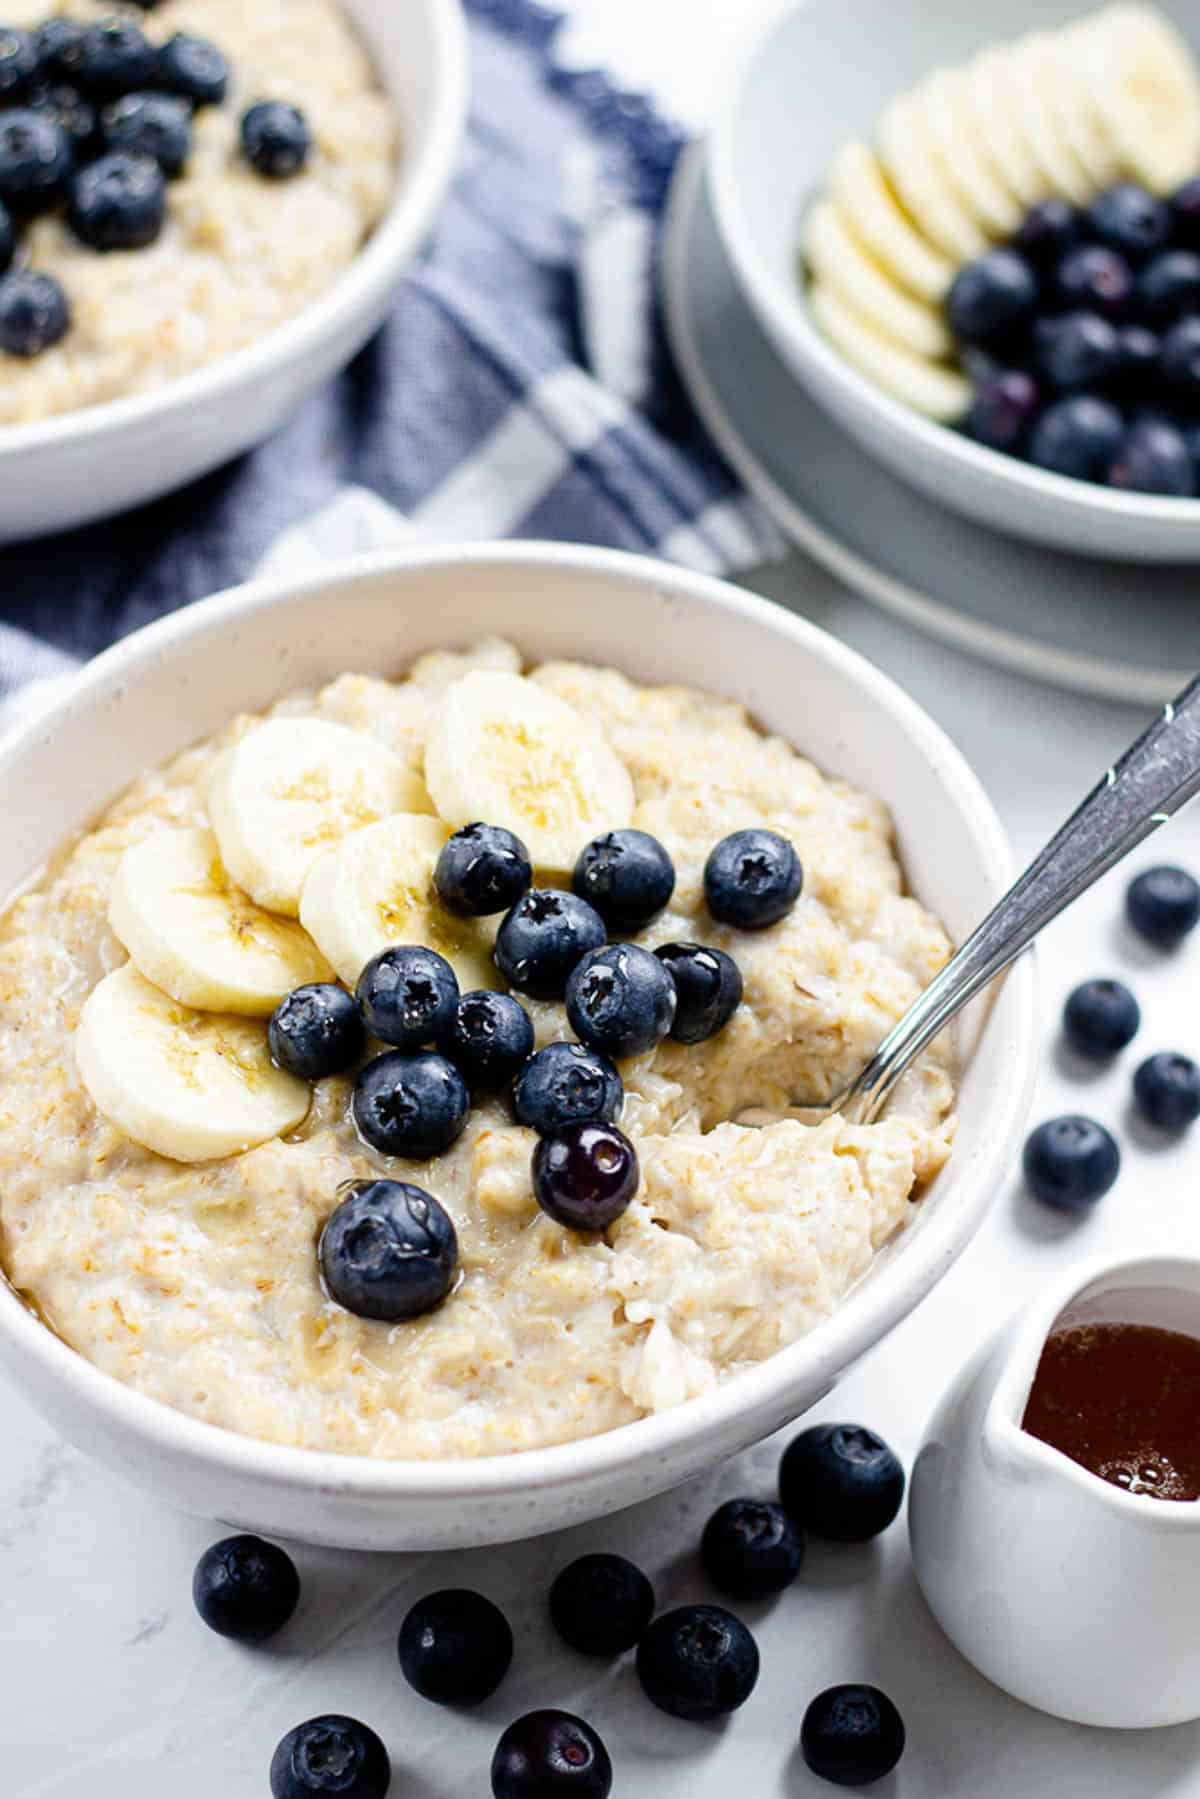 Oatmeal, topped with banana and blueberries in a bowl.